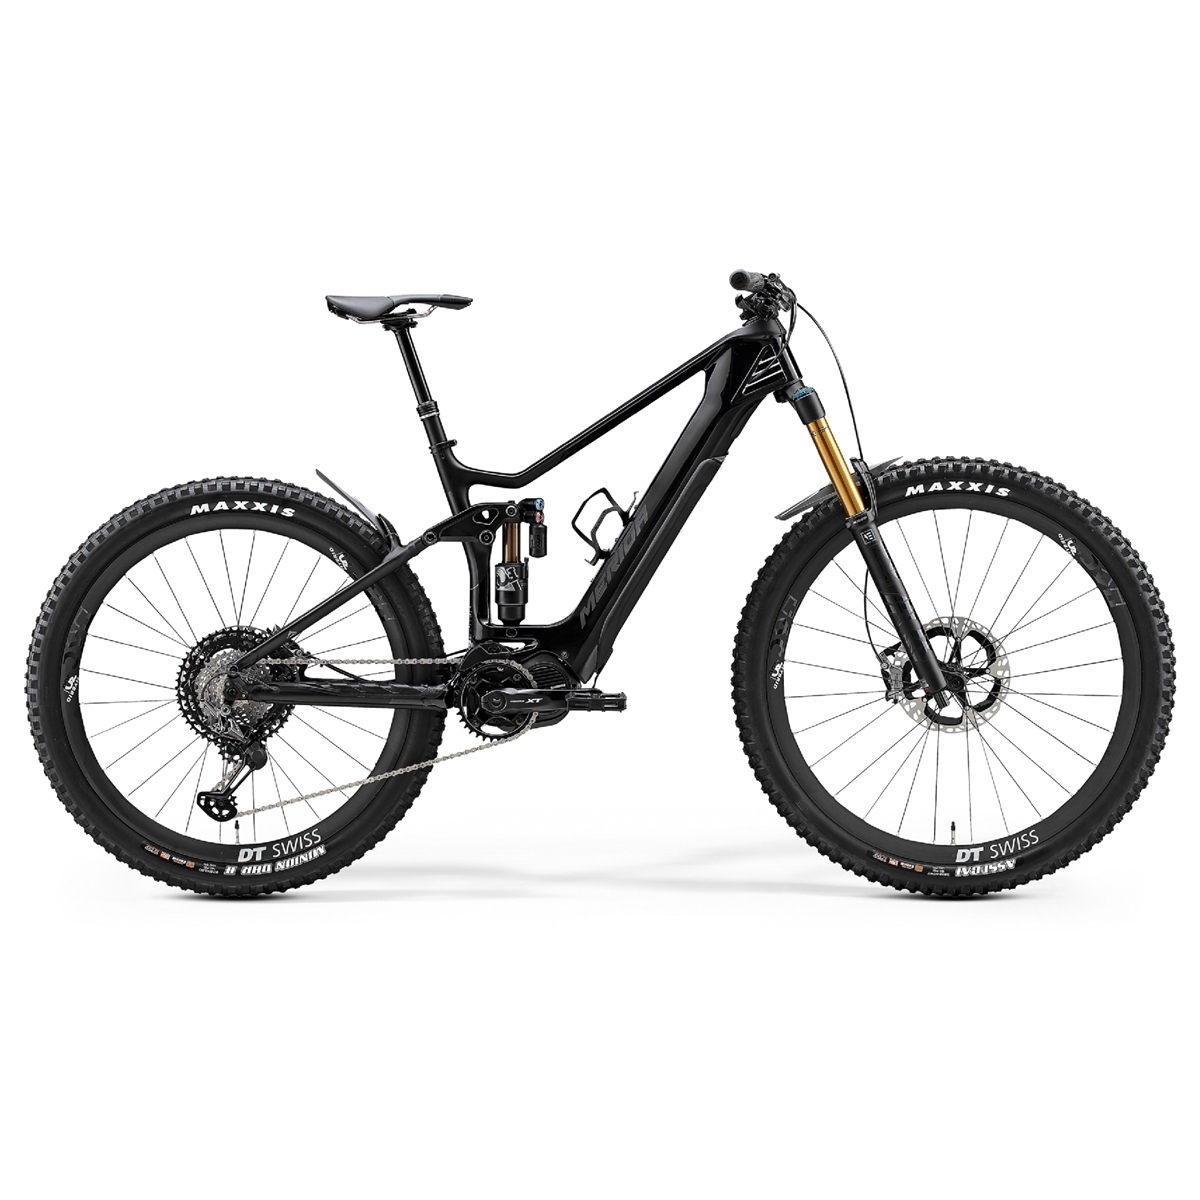 eONE-SIXTY 10K 29/27.5'' 160mm 12s 2x Spare Batteries 504Wh Shimano E8000 Black Size M/44